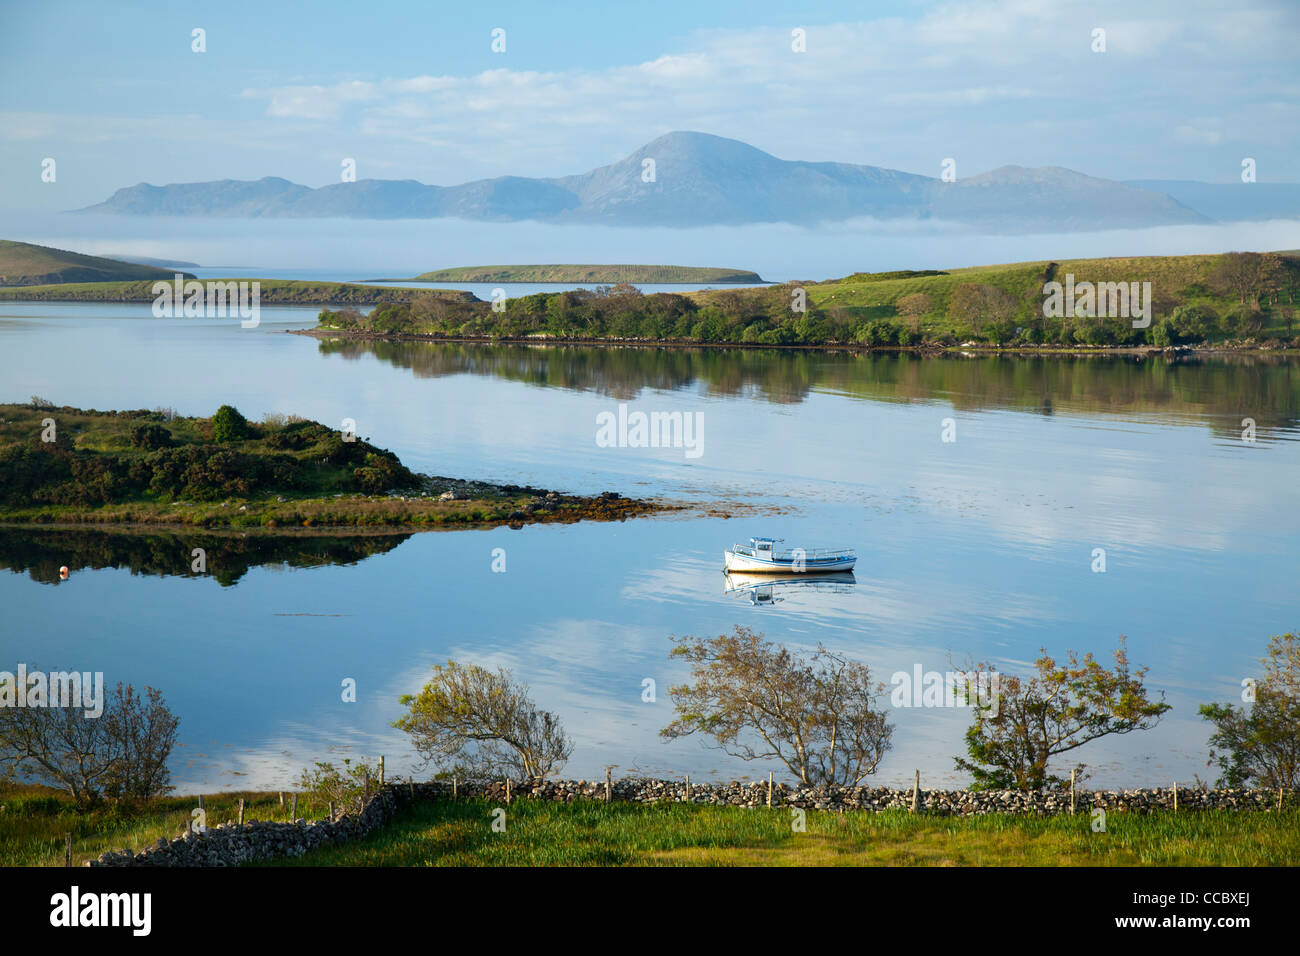 Fishing boat moored in Clew Bay beneath Croagh Patrick, County Mayo, Ireland. - Stock Image